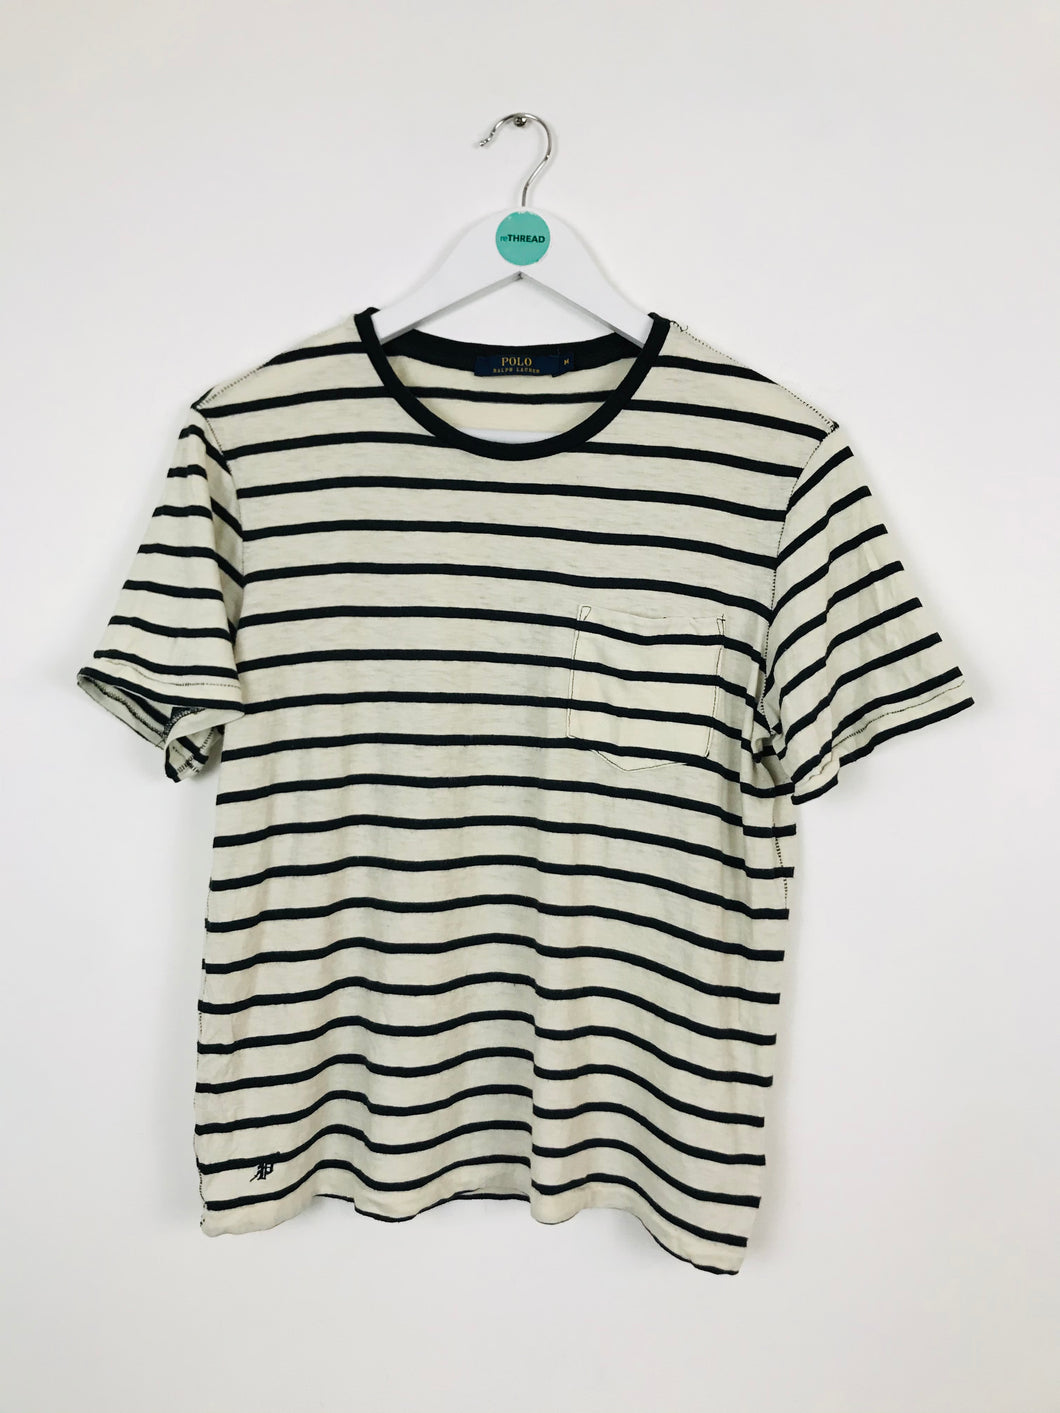 Ralph Lauren Womens Stripe T-shirt | UK10 | Black and cream